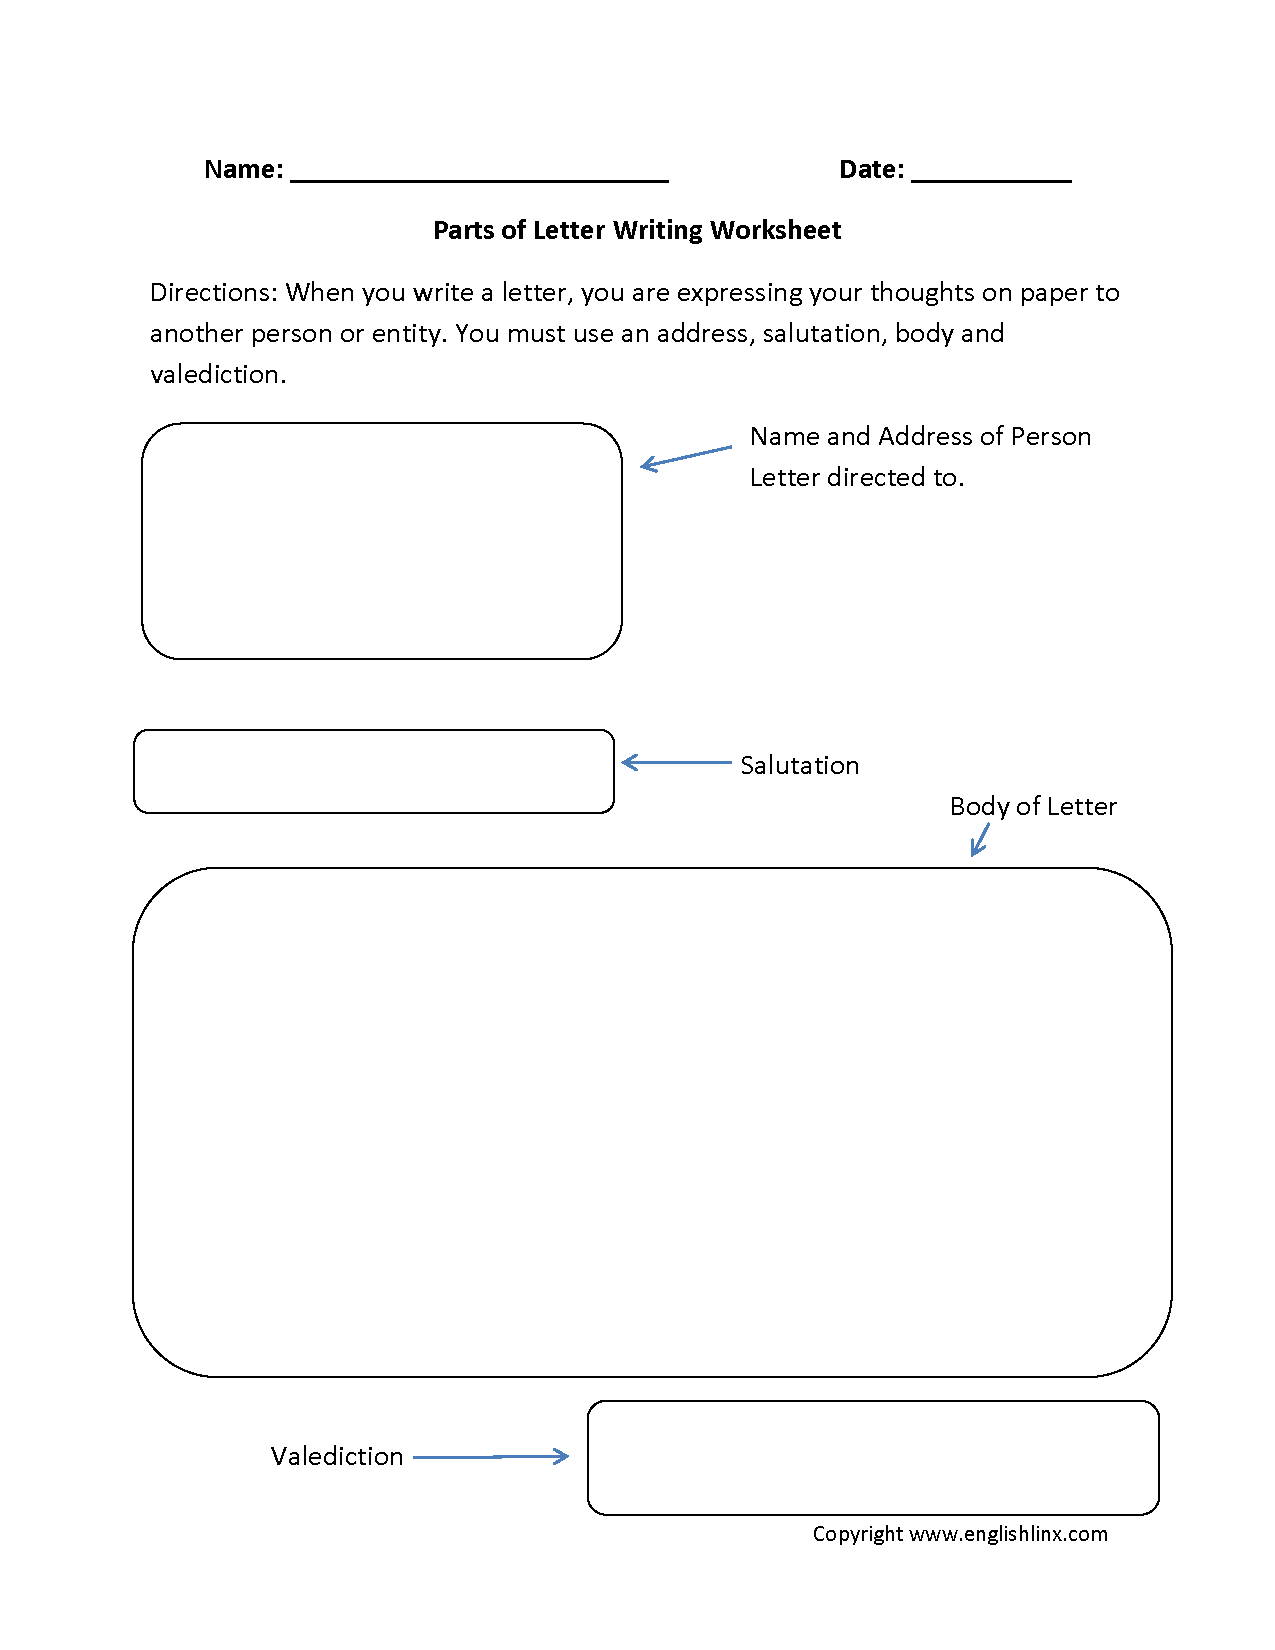 worksheet Parts Of A Letter Worksheet letter writing worksheets parts of worksheets